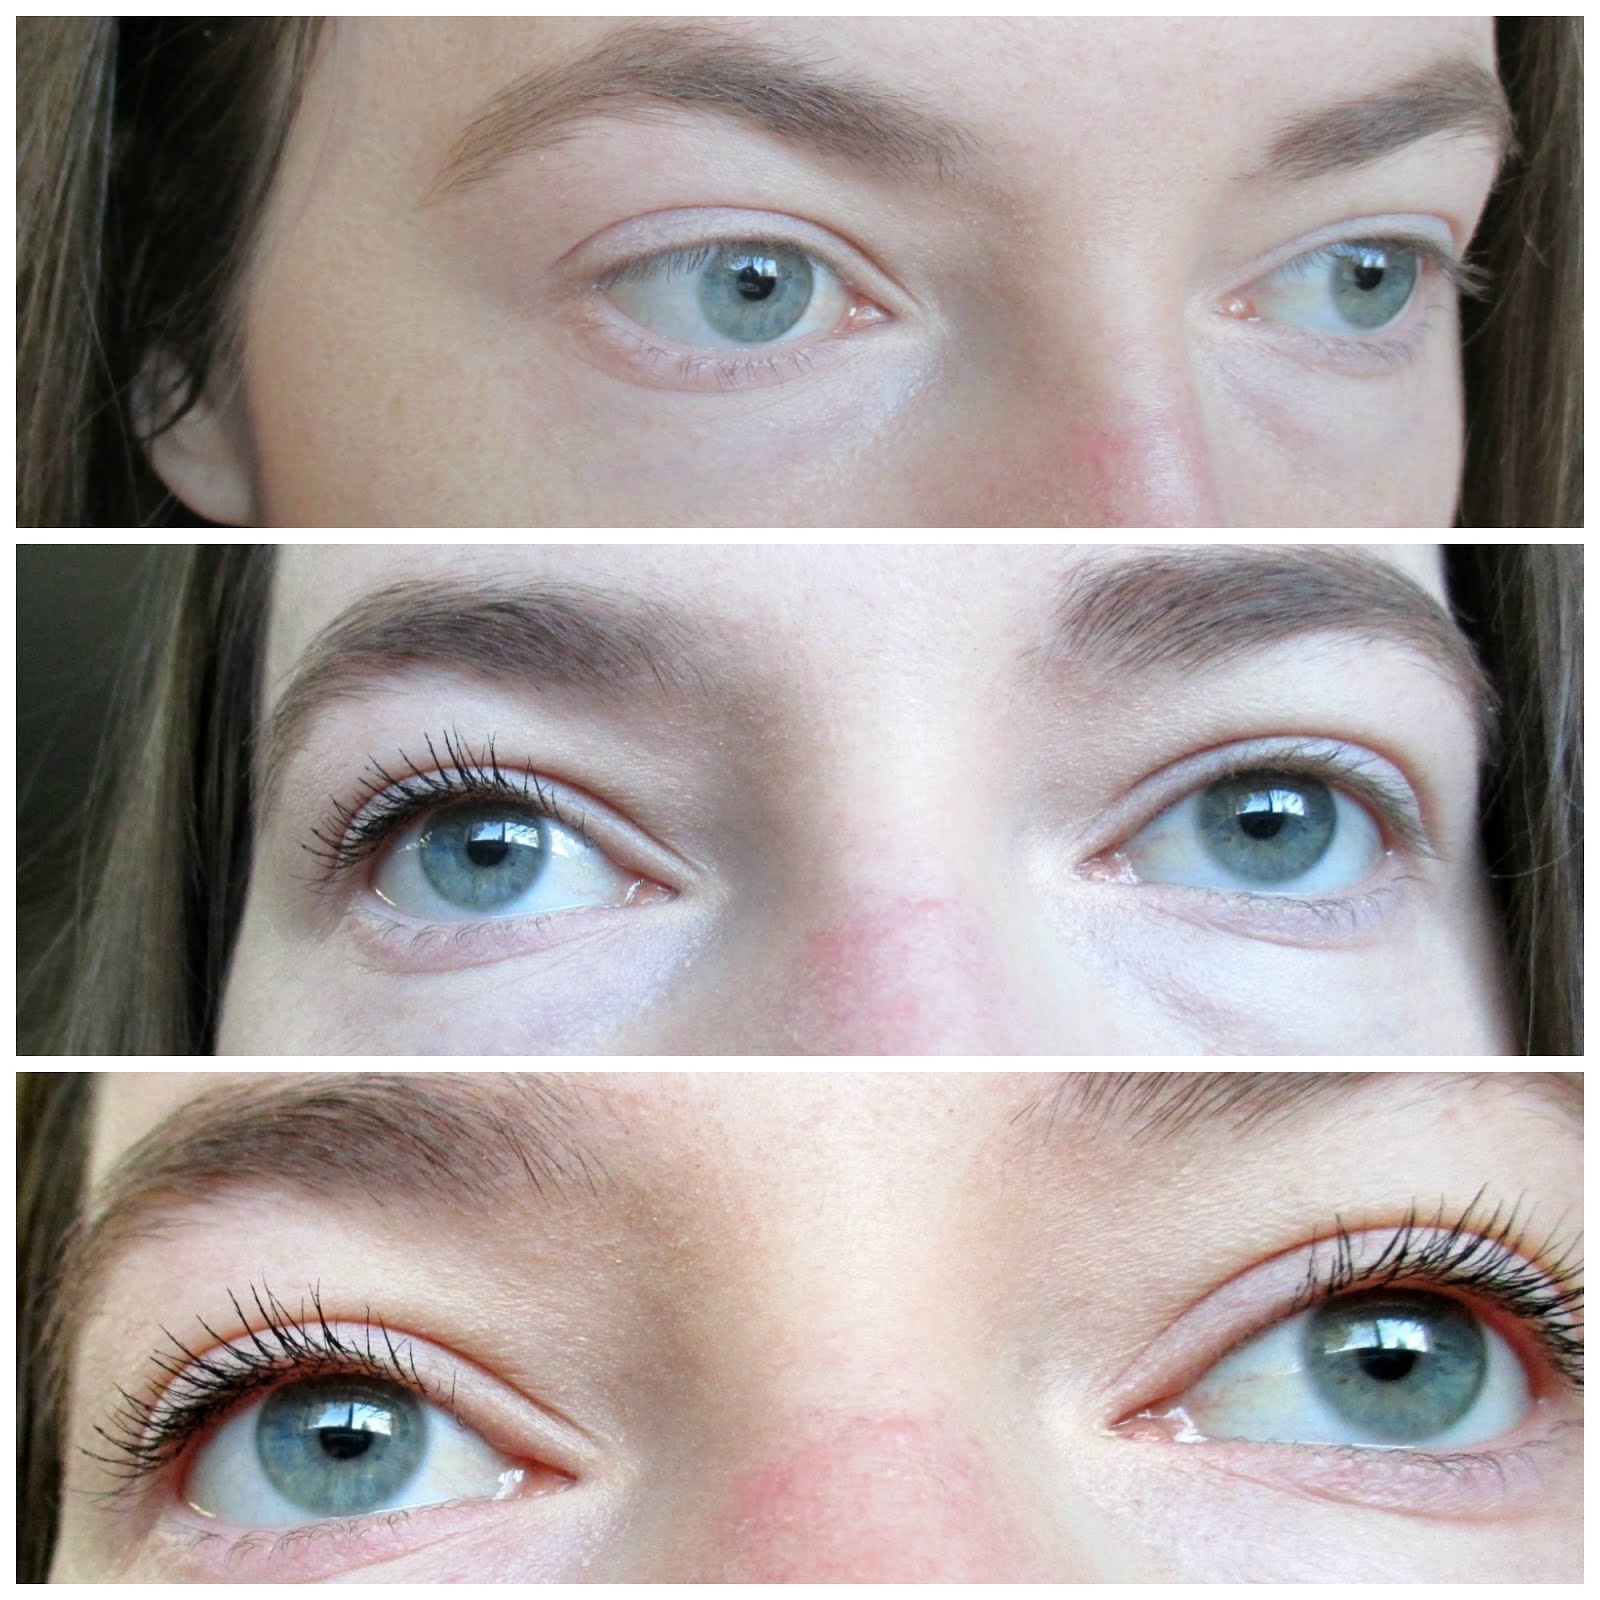 1adbbb0b981 Top photo: No mascara. Middle photo: Length mascara on left side only, none  on right. Bottom photot: Both steps on both eyes